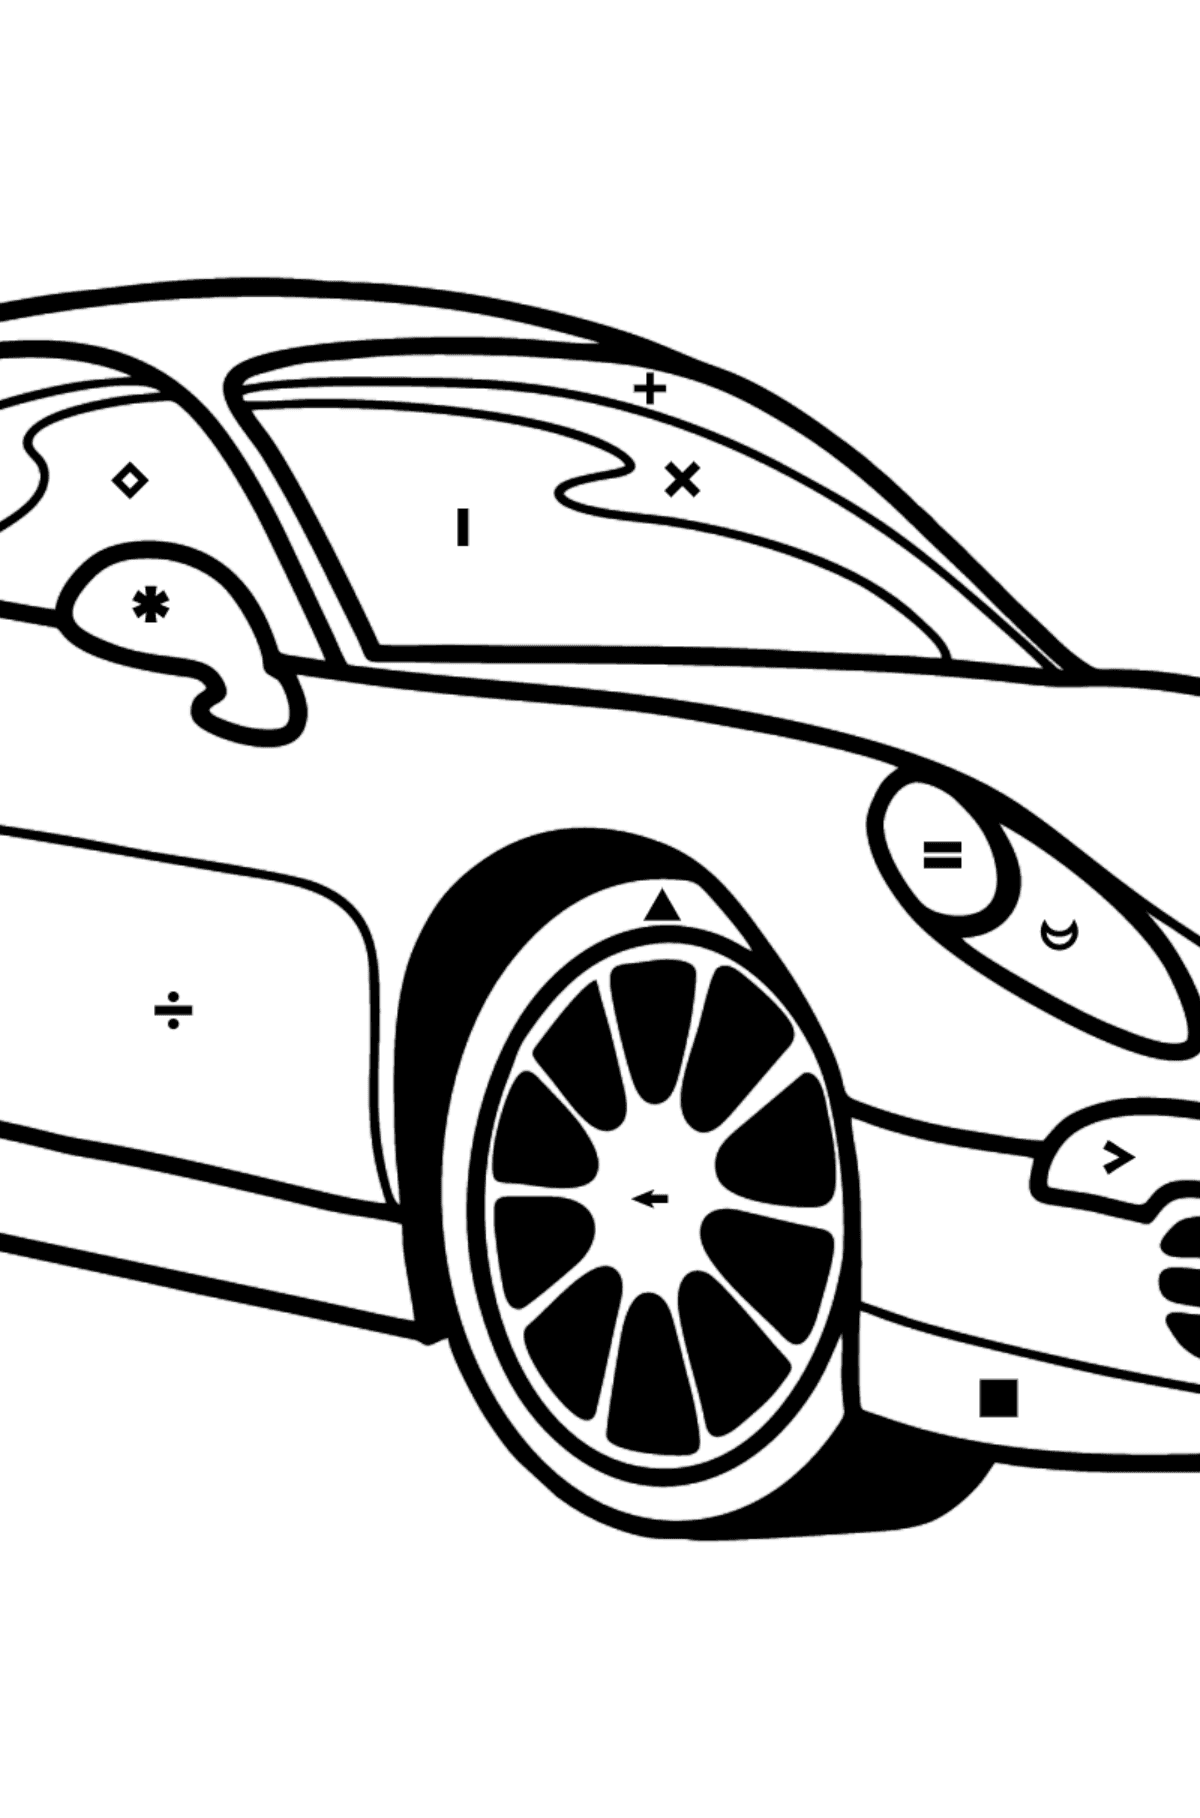 Porsche Cayman Sports Car coloring page - Coloring by Symbols for Kids